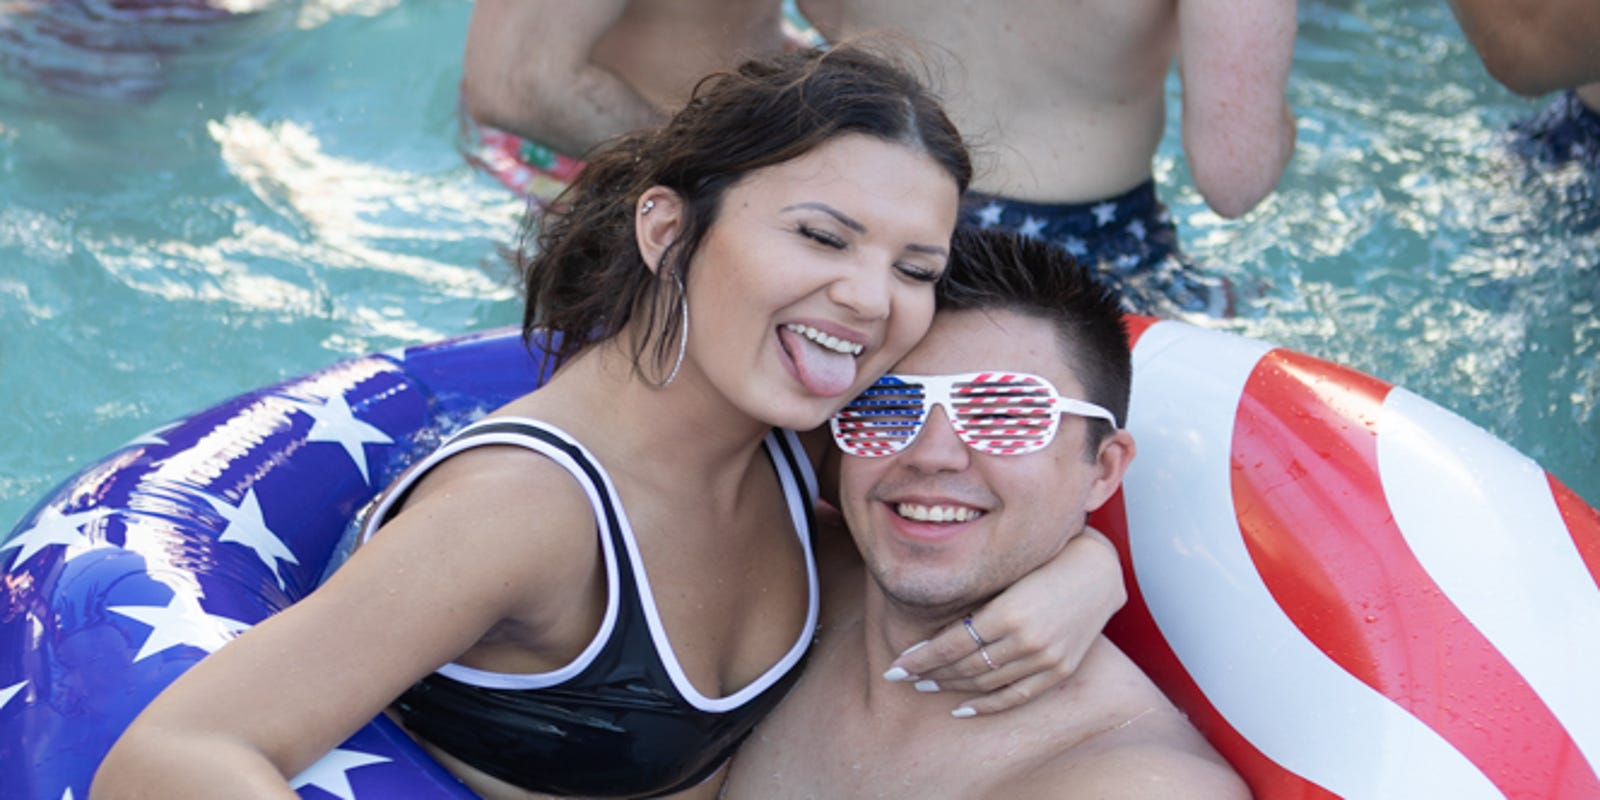 7 Arizona cities make top 100 list for 4th of July celebrations — sorry, Tempe!